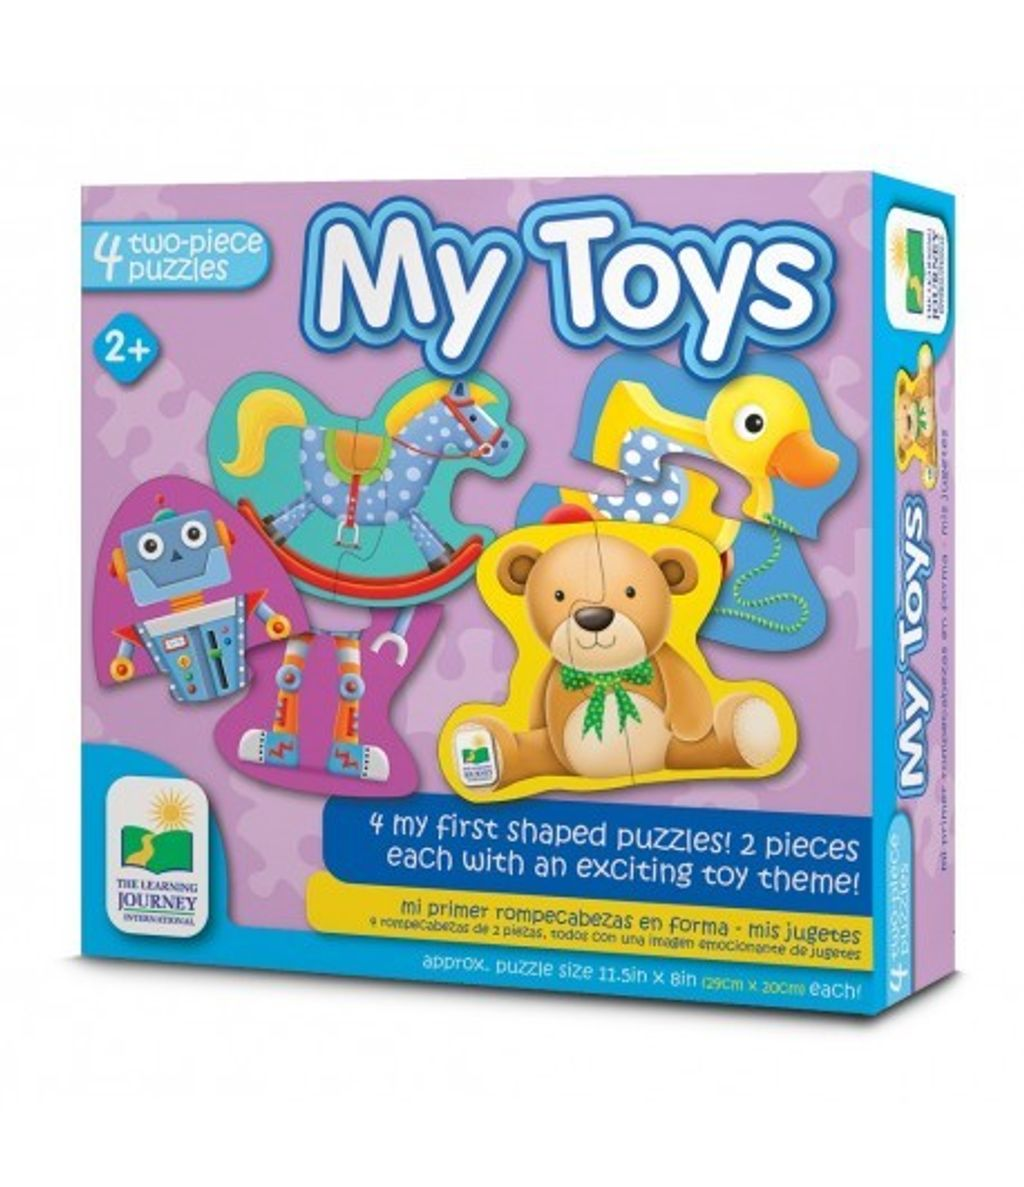 my-first-shaped-puzzles-my-toys